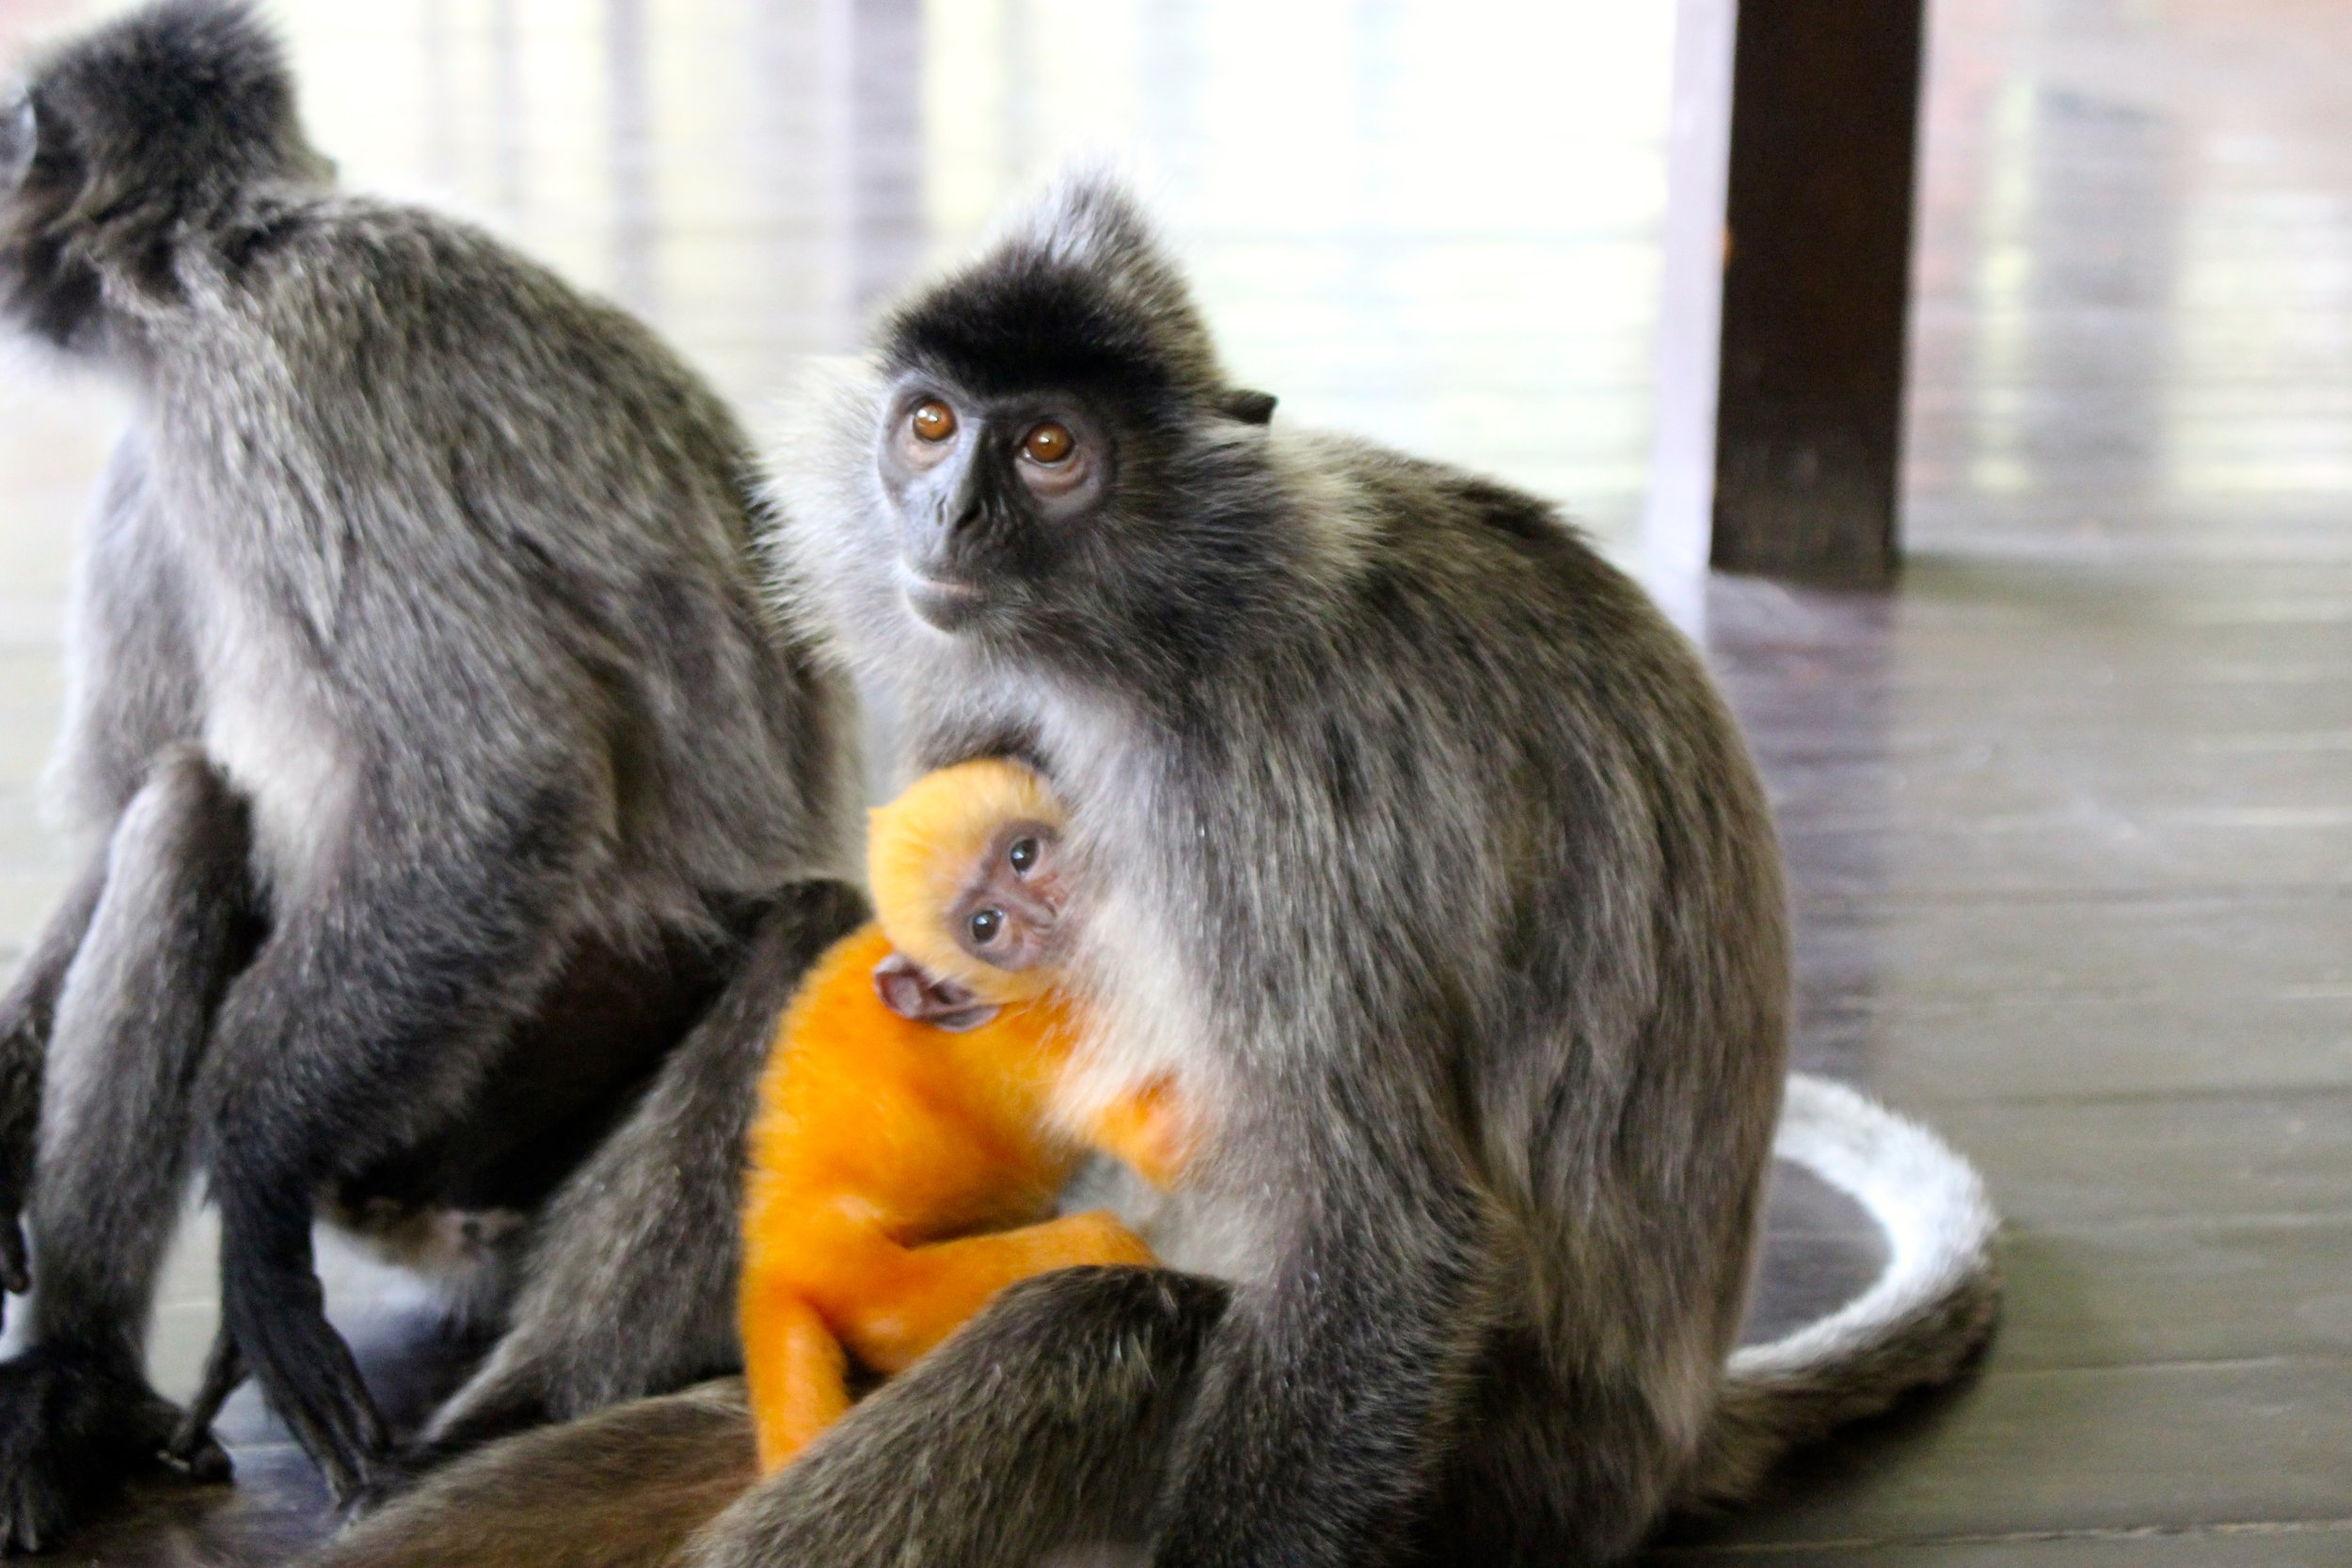 Our new favorite animal might have been found here in Borneo, Malaysia. This Silverleaf female monkey and her beautiful and bright baby were very mild-mannered, playful and even stopped for a photo op. The baby will eventually turn over to a grey/silver color in time, but for now looks pretty cute in this bright orange coat.